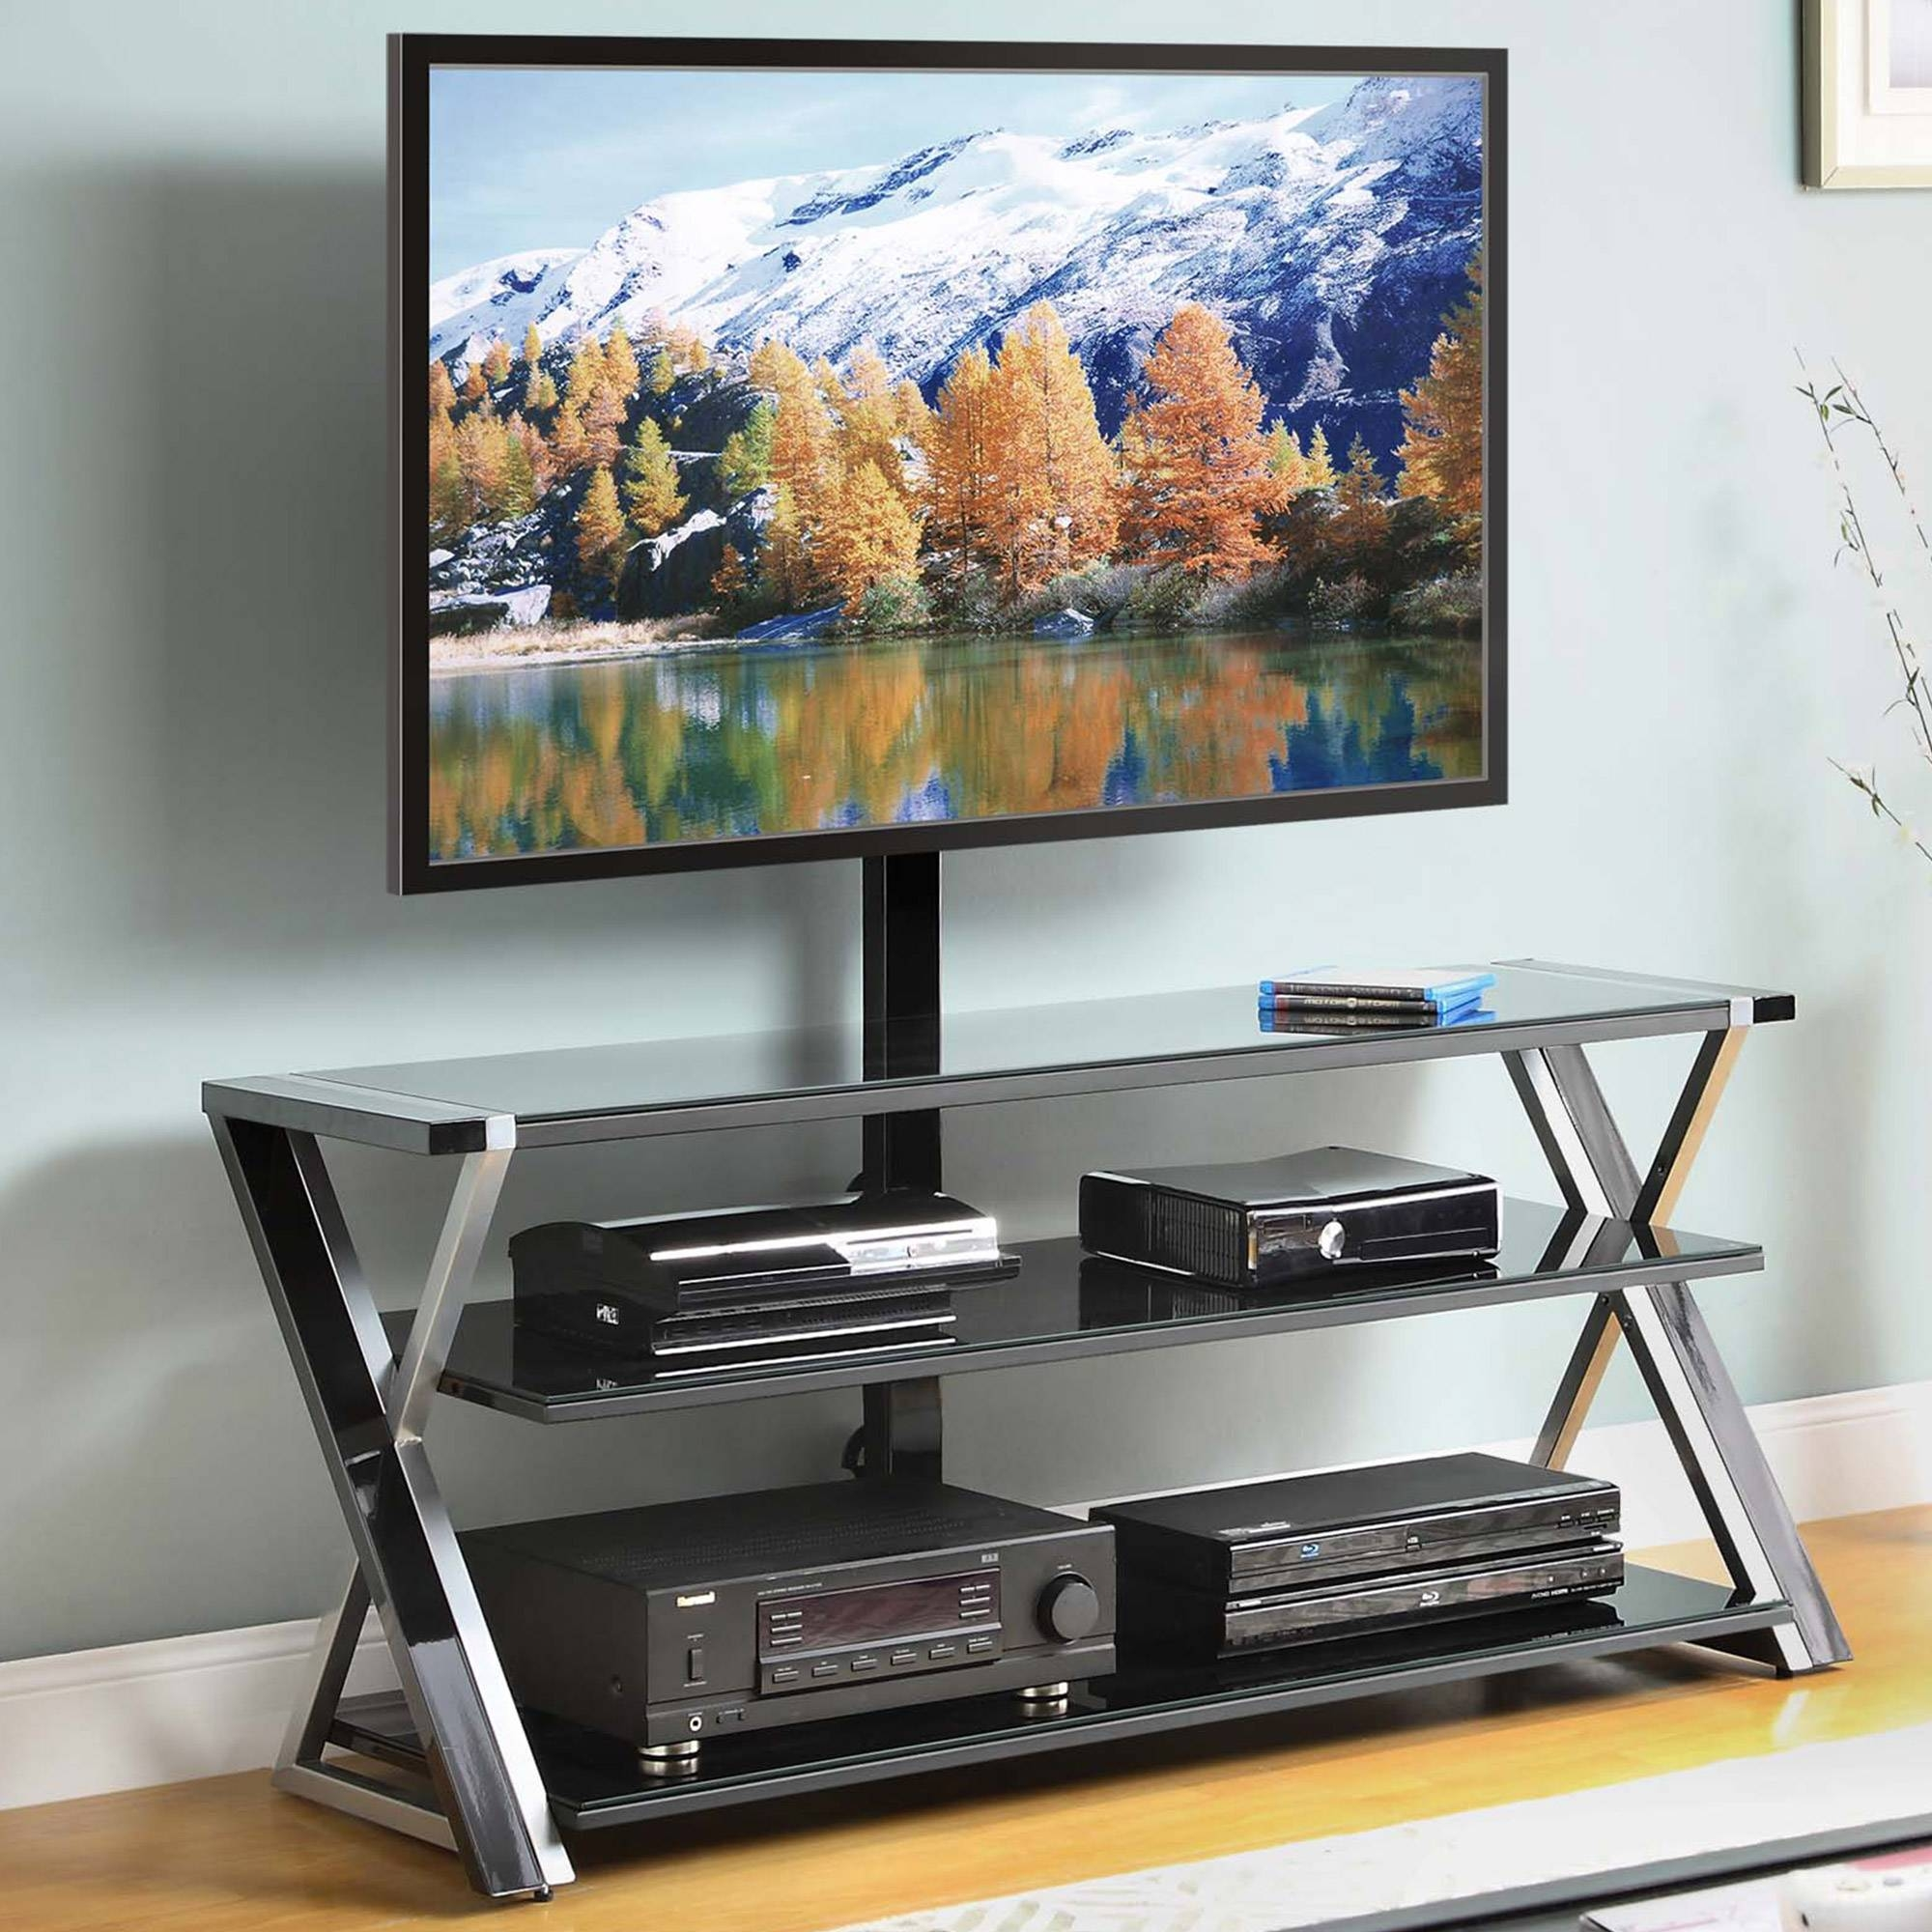 Tv Stands - Walmart inside Tv Stands for Tube Tvs (Image 11 of 15)